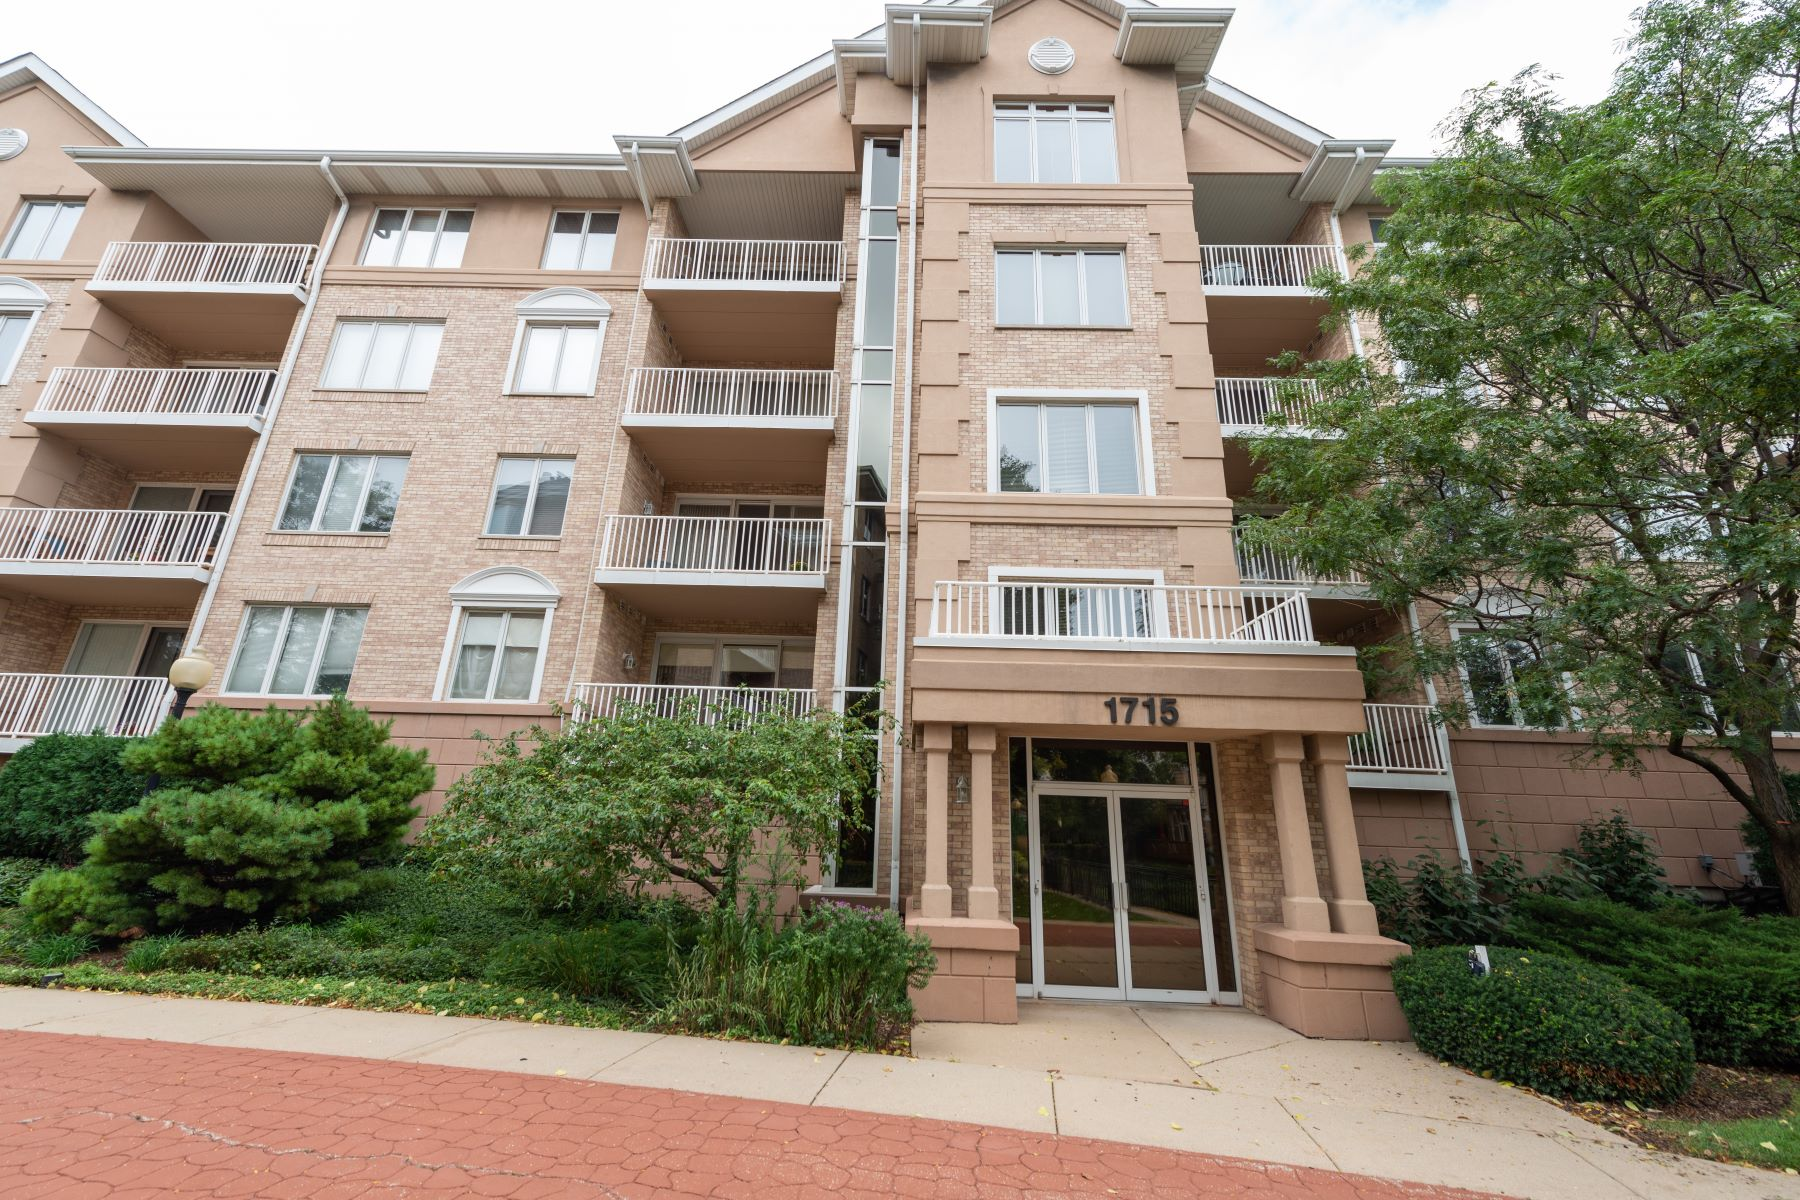 Single Family Homes para Venda às Rarely Available Park Ridge Pointe Three Bedroom 1715 Pavilion Way Unit 207, Park Ridge, Illinois 60068 Estados Unidos